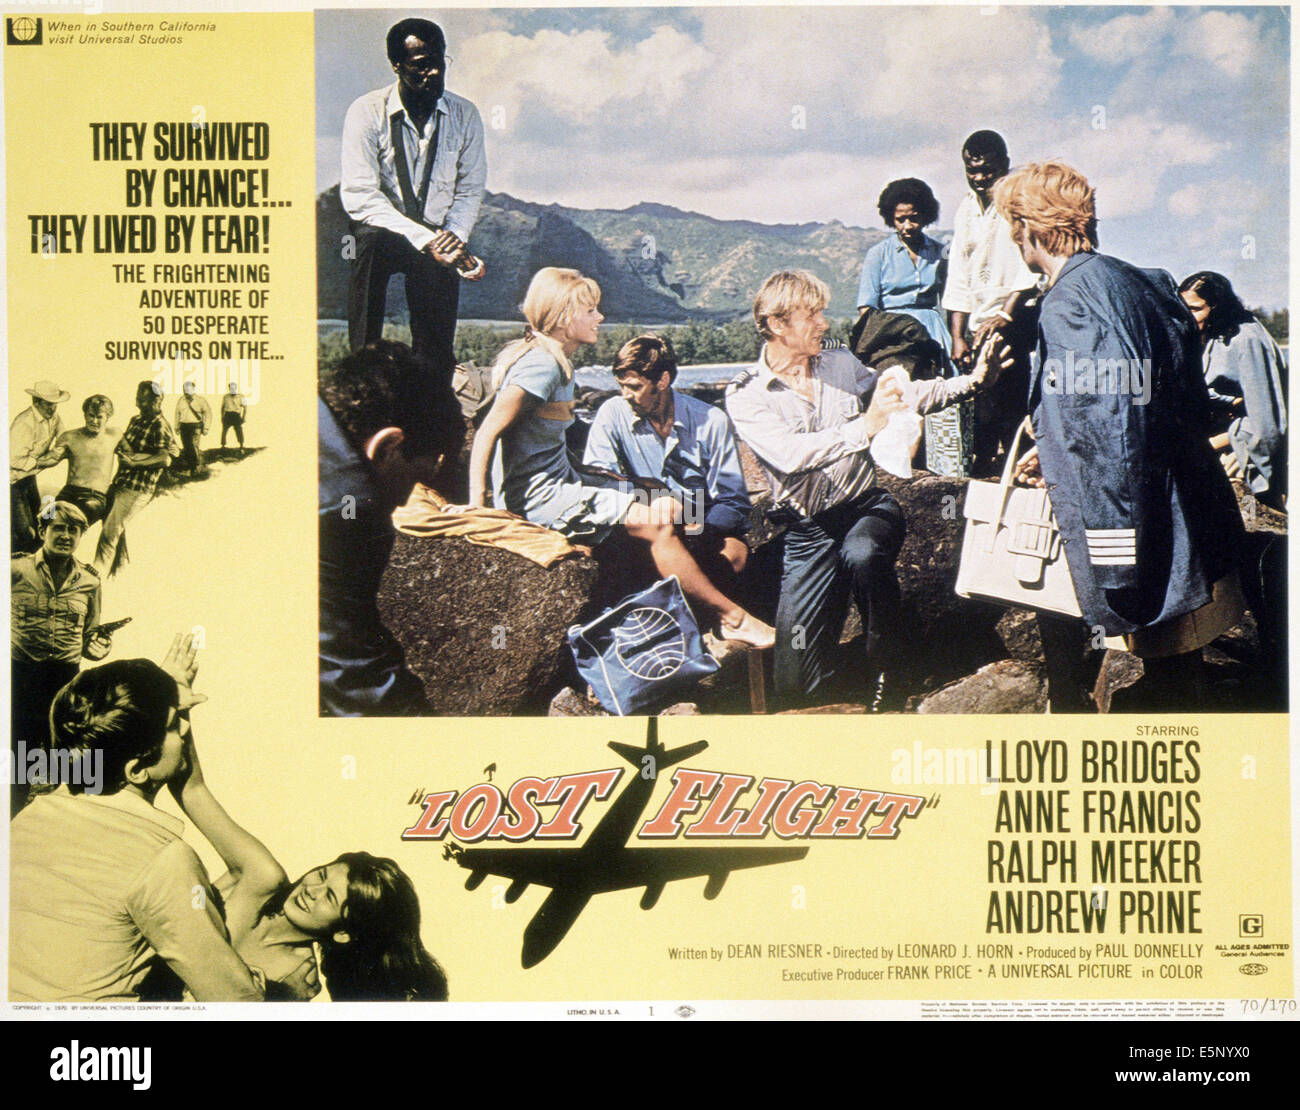 LOST FLIGHT, Lloyd Bridges (center arms outstretched), 1970 - Stock Image